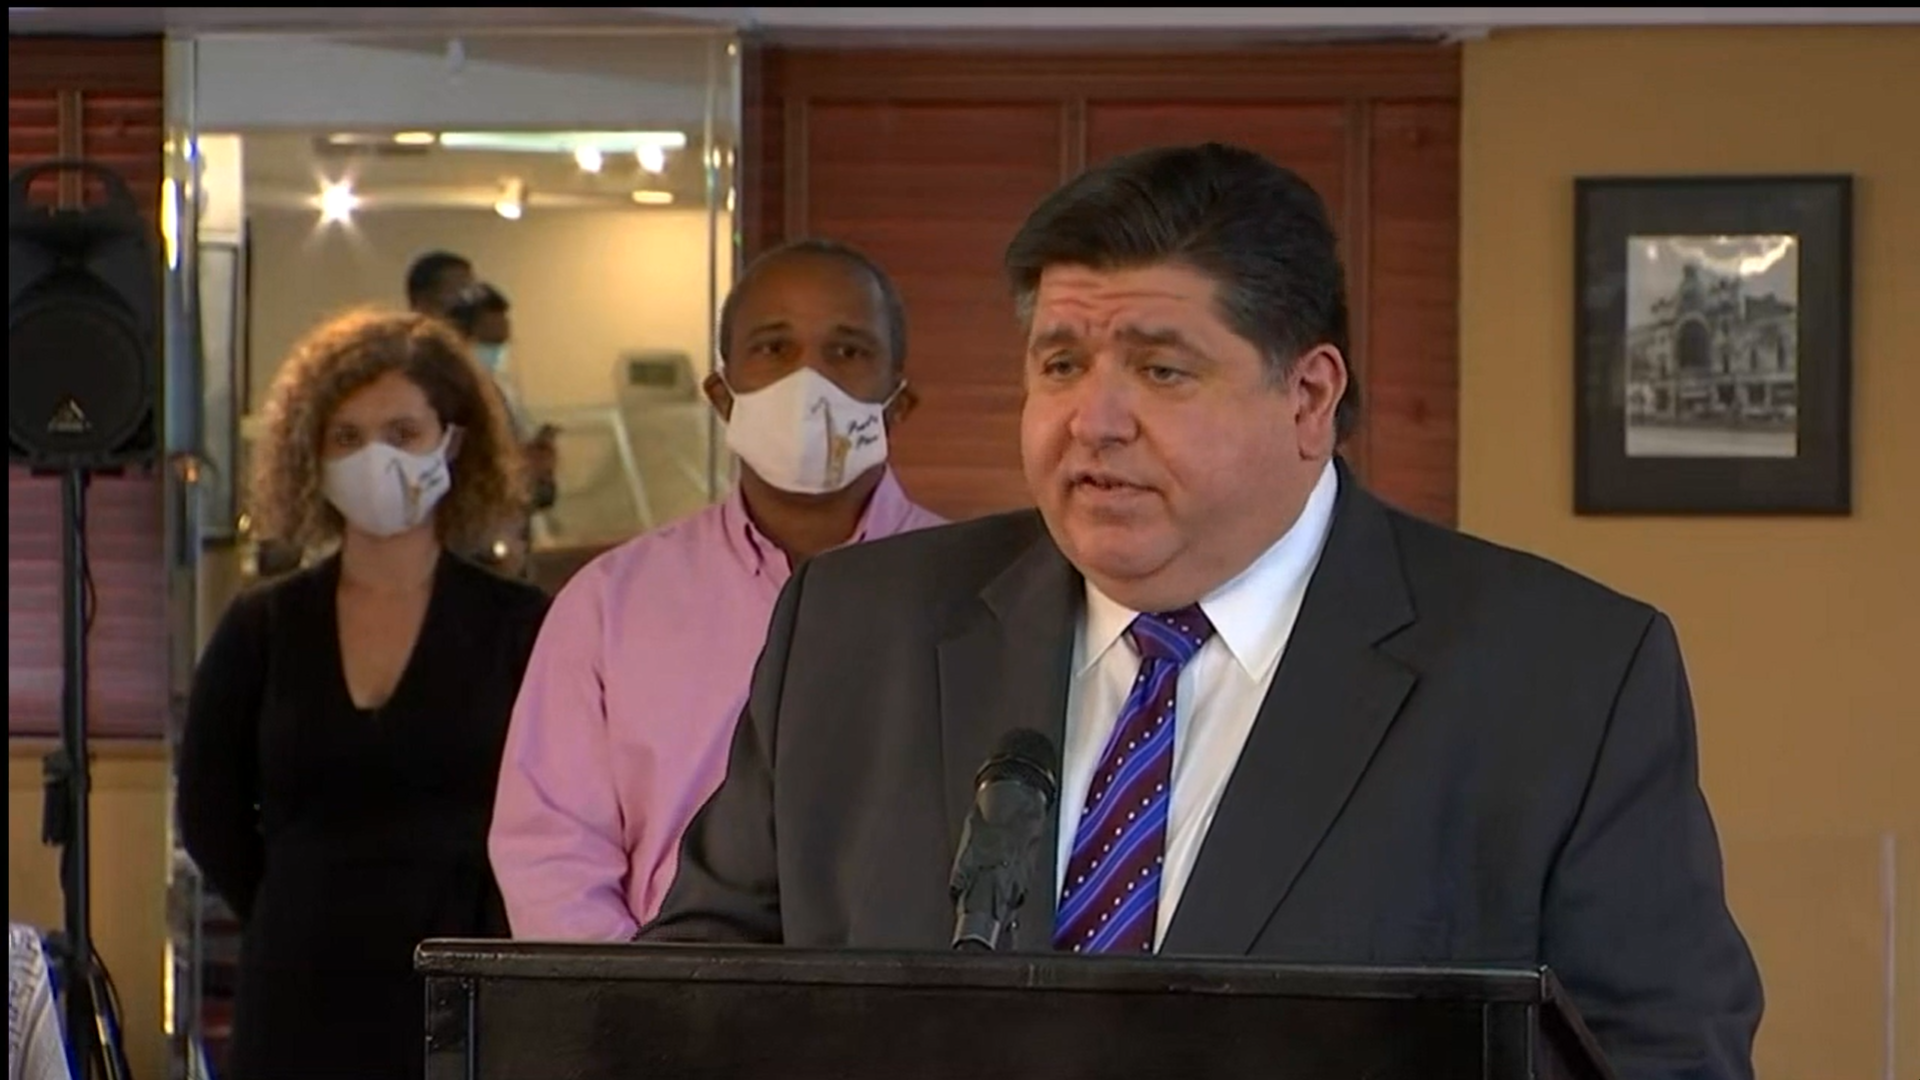 Pritzker says it's time for Madigan to step down as party chairman